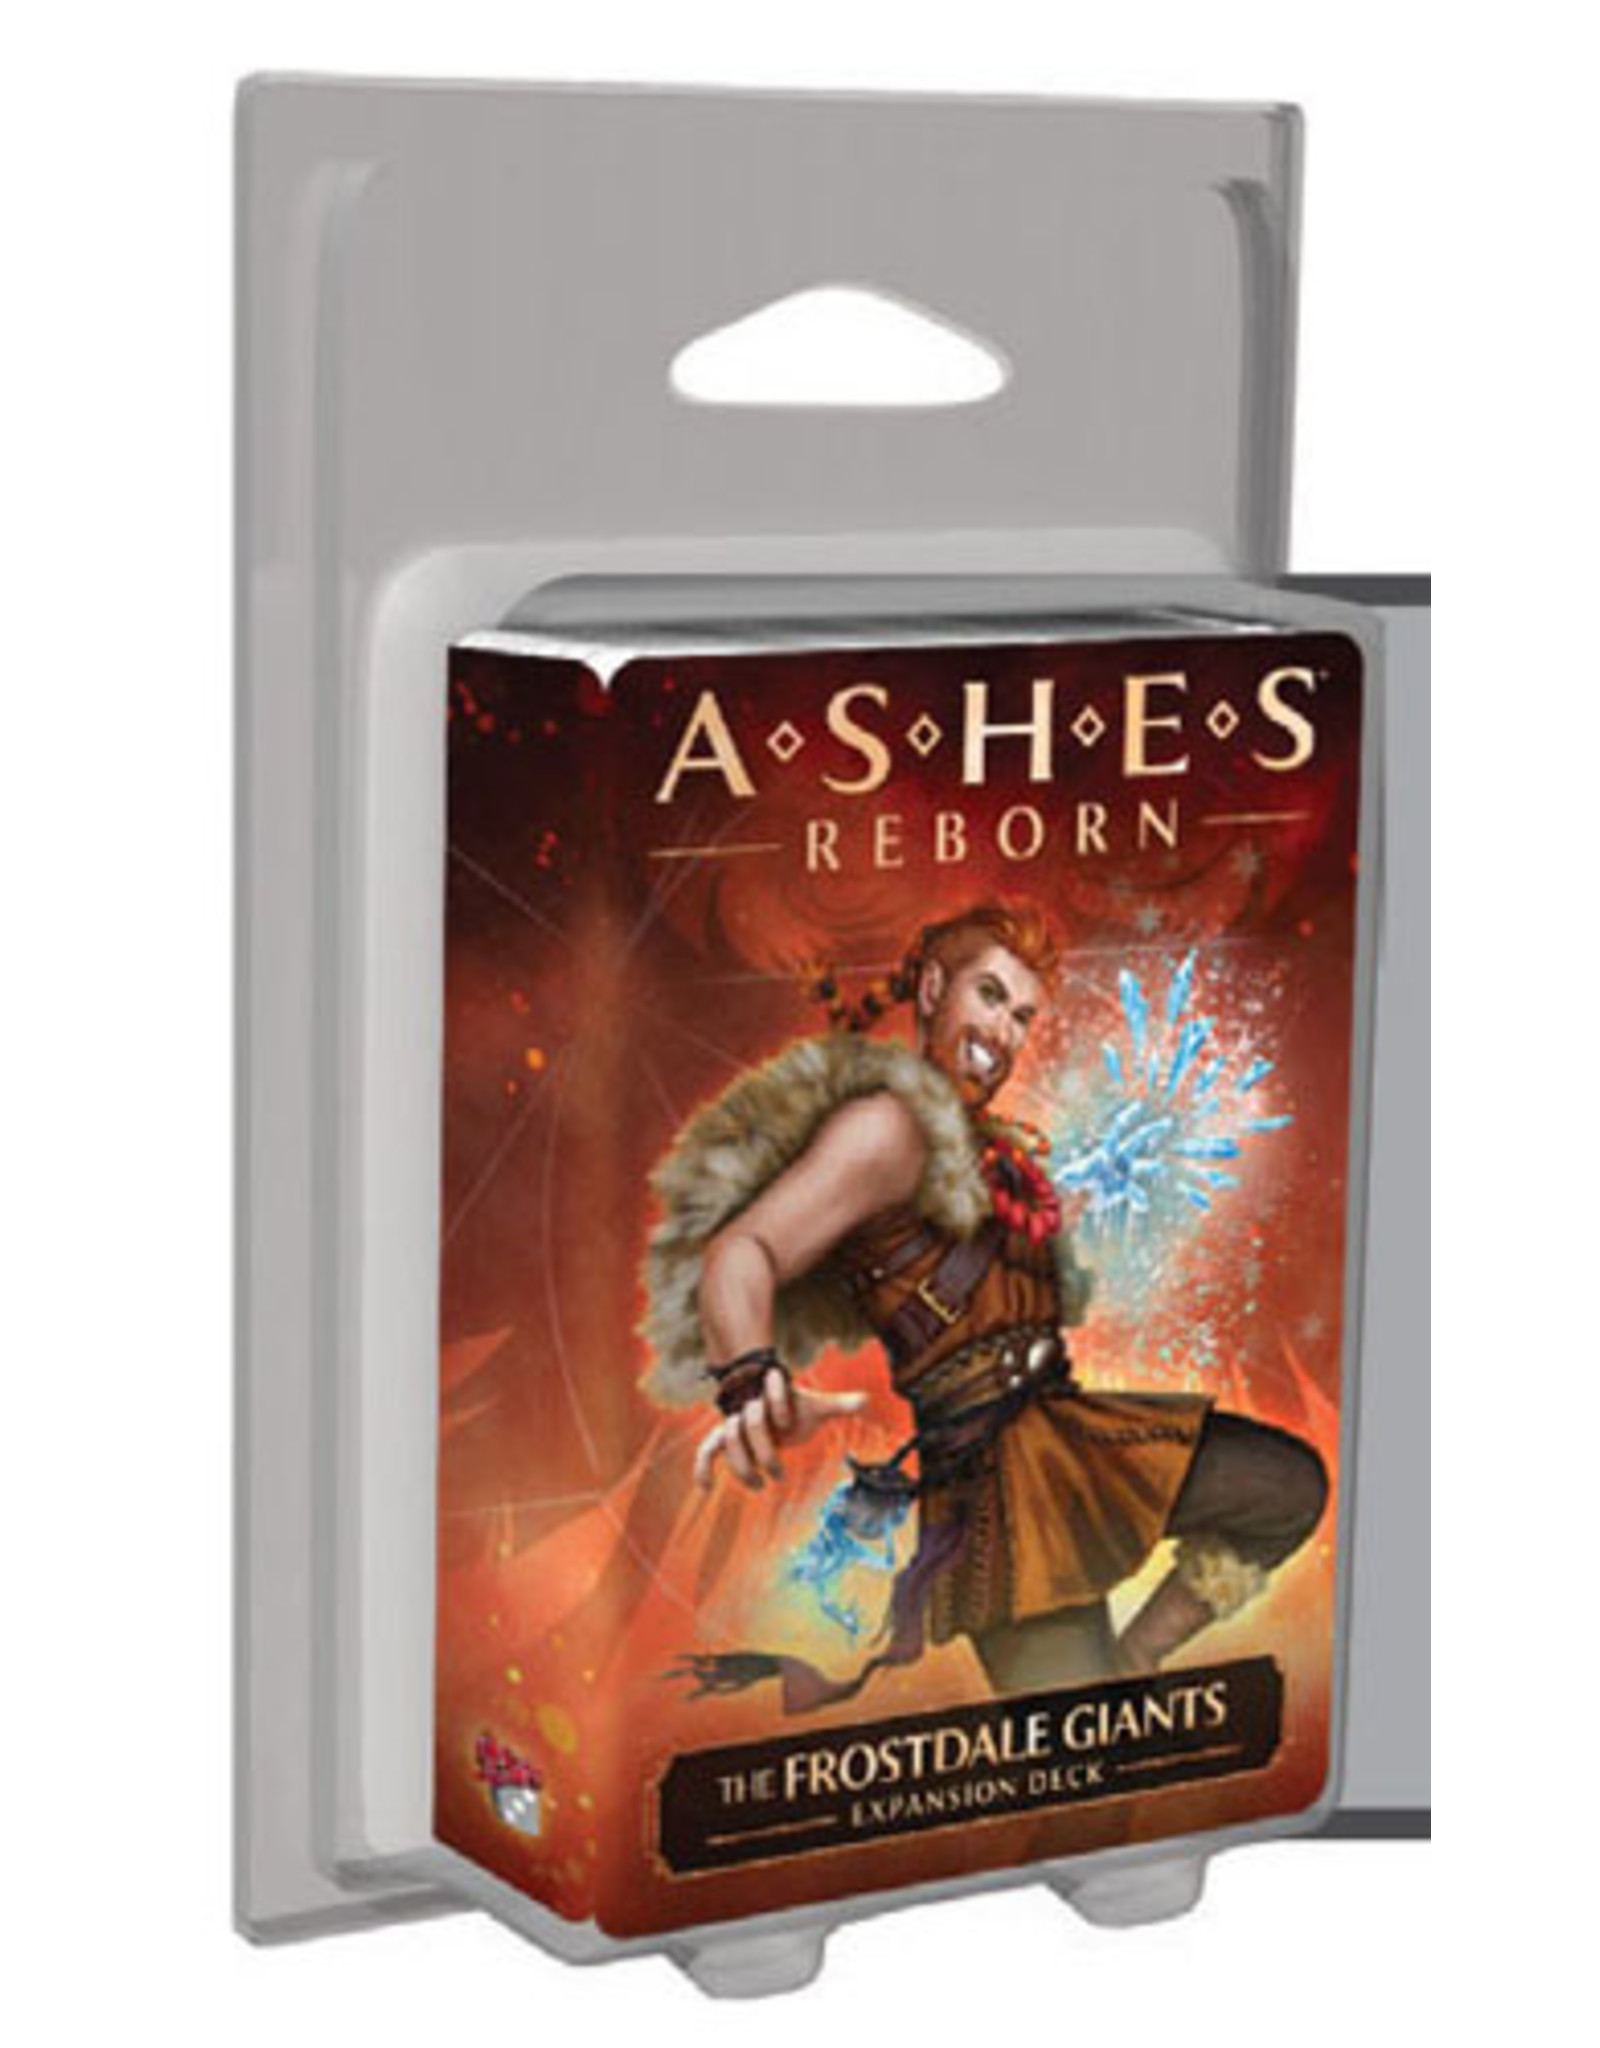 Ashes Reborn The Frostdale Giants